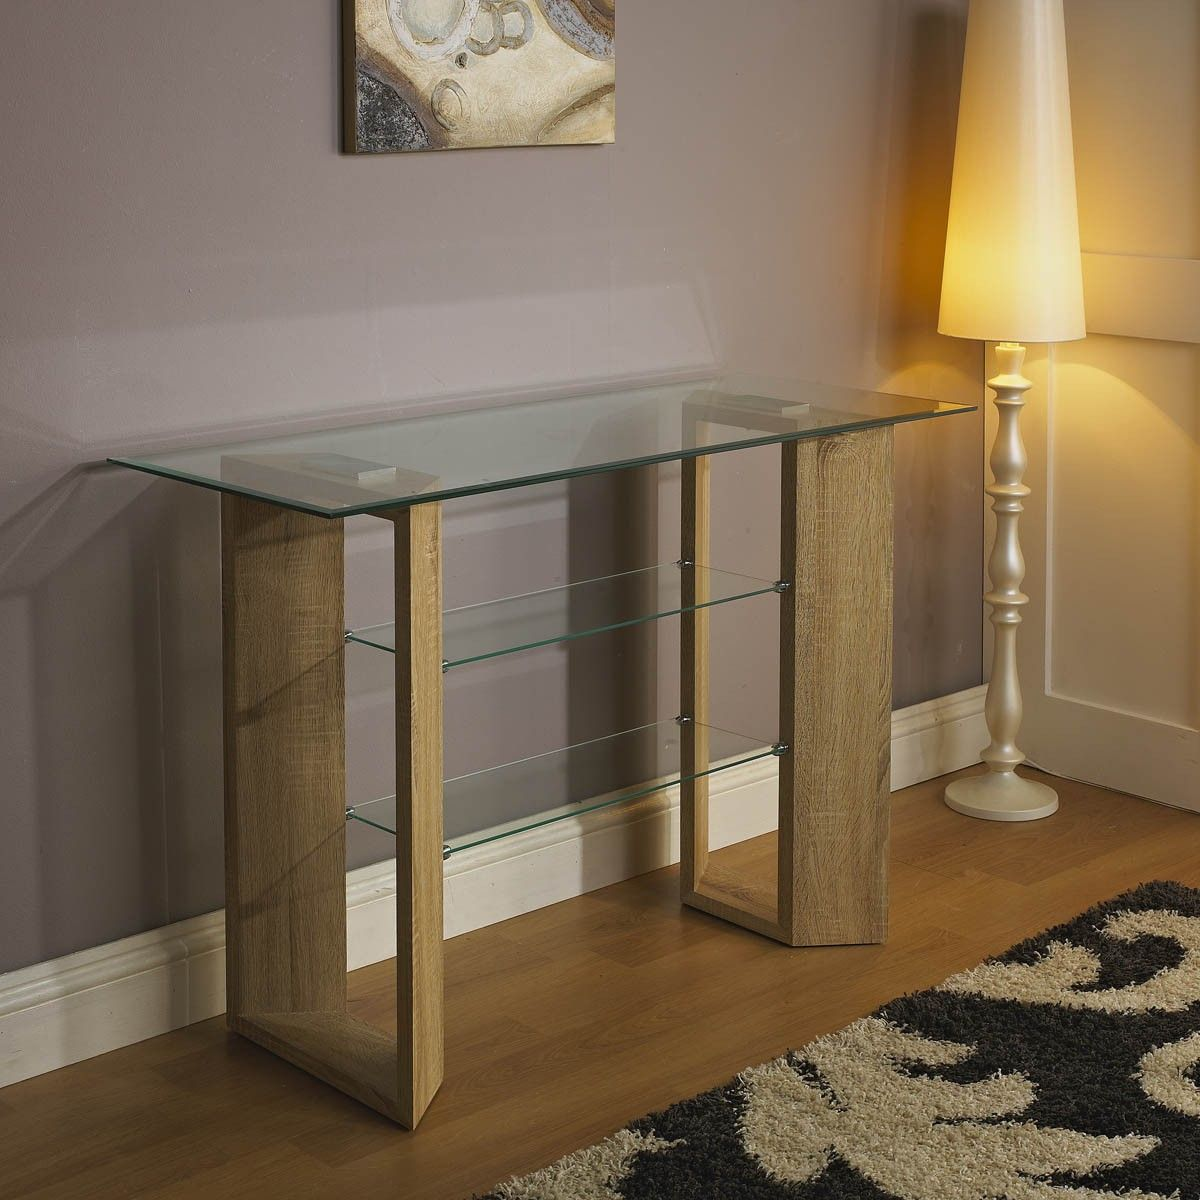 Golf console table 8mm tempered glass table top with 6mm frosted golf tempered glass top console table with frosted glass shelf and oak veneer legs geotapseo Choice Image